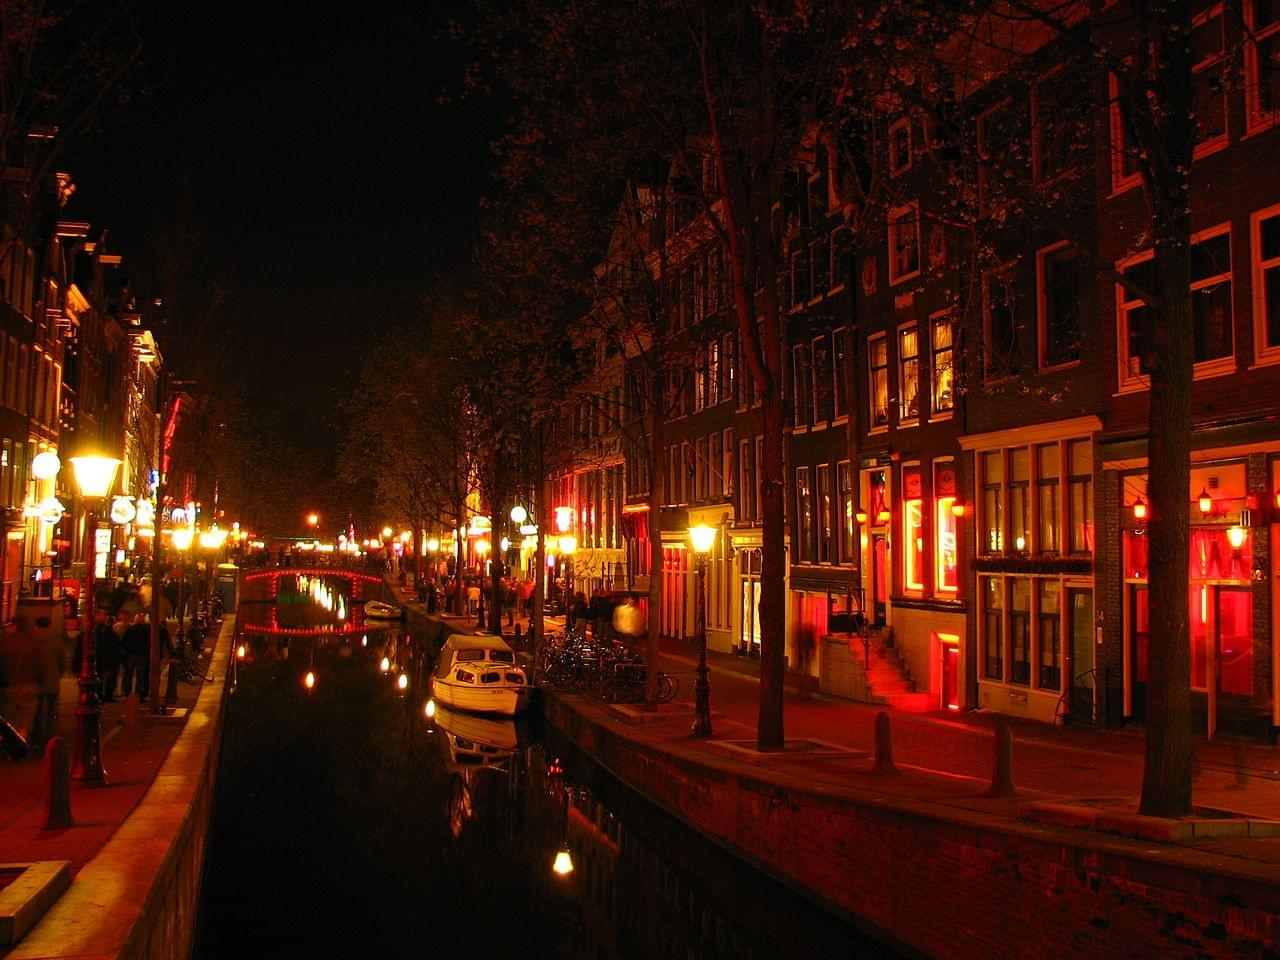 Le Red light district, le quartier rouge